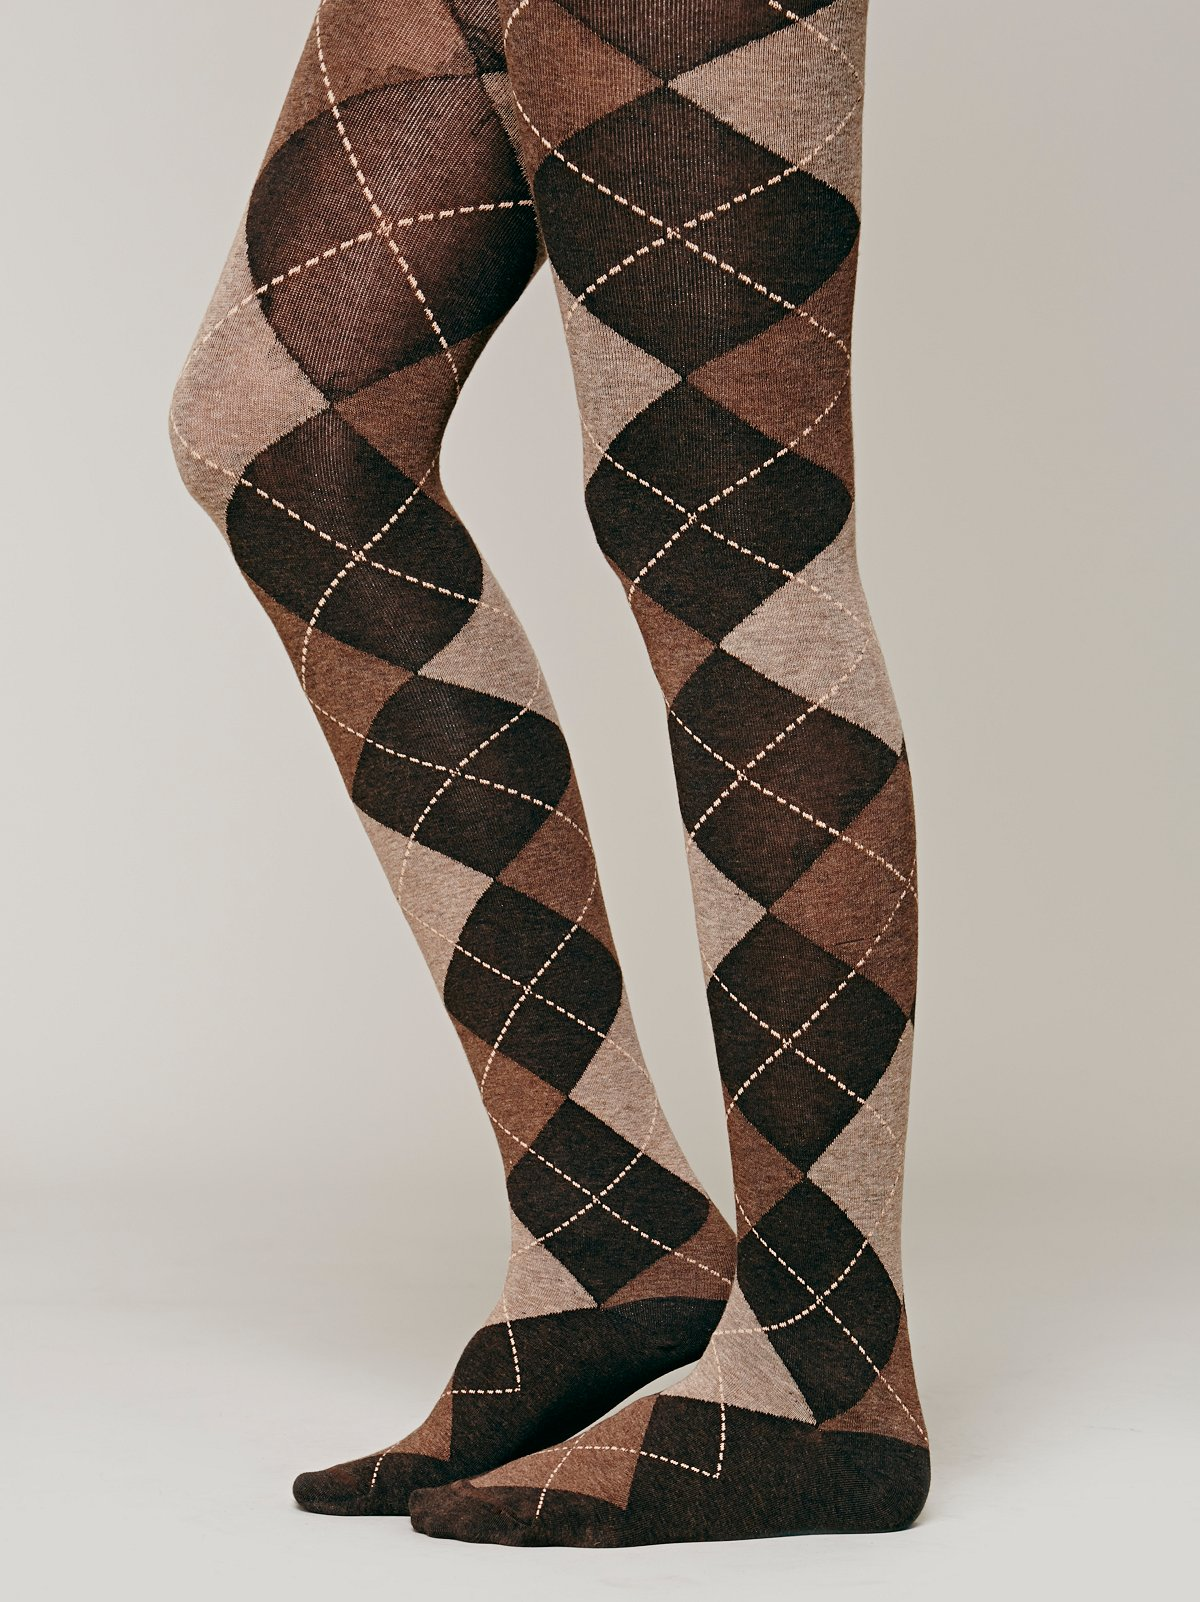 Chamberlain Argyle Tight